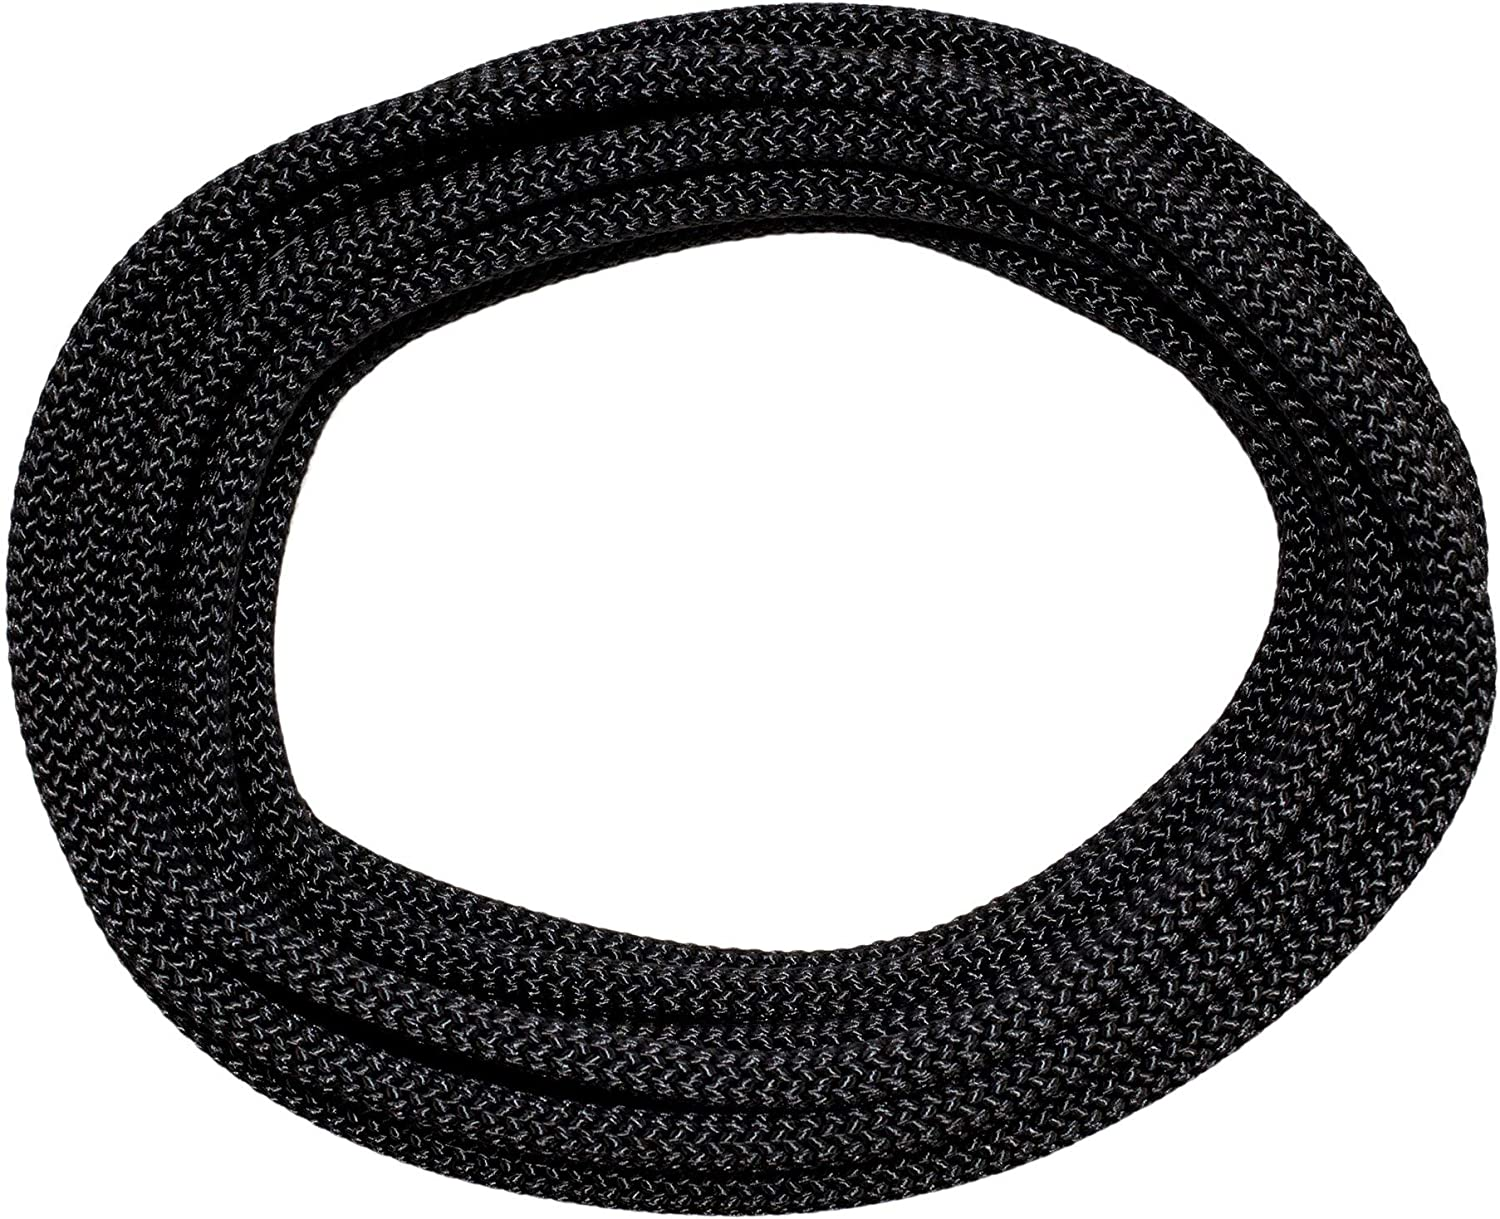 Solid Braid Black 11mm SGT KNOTS Abseiling Rope Caving Cargo Tie Downs General Purpose Marlow All-Purpose Tactical Rope for Climbing